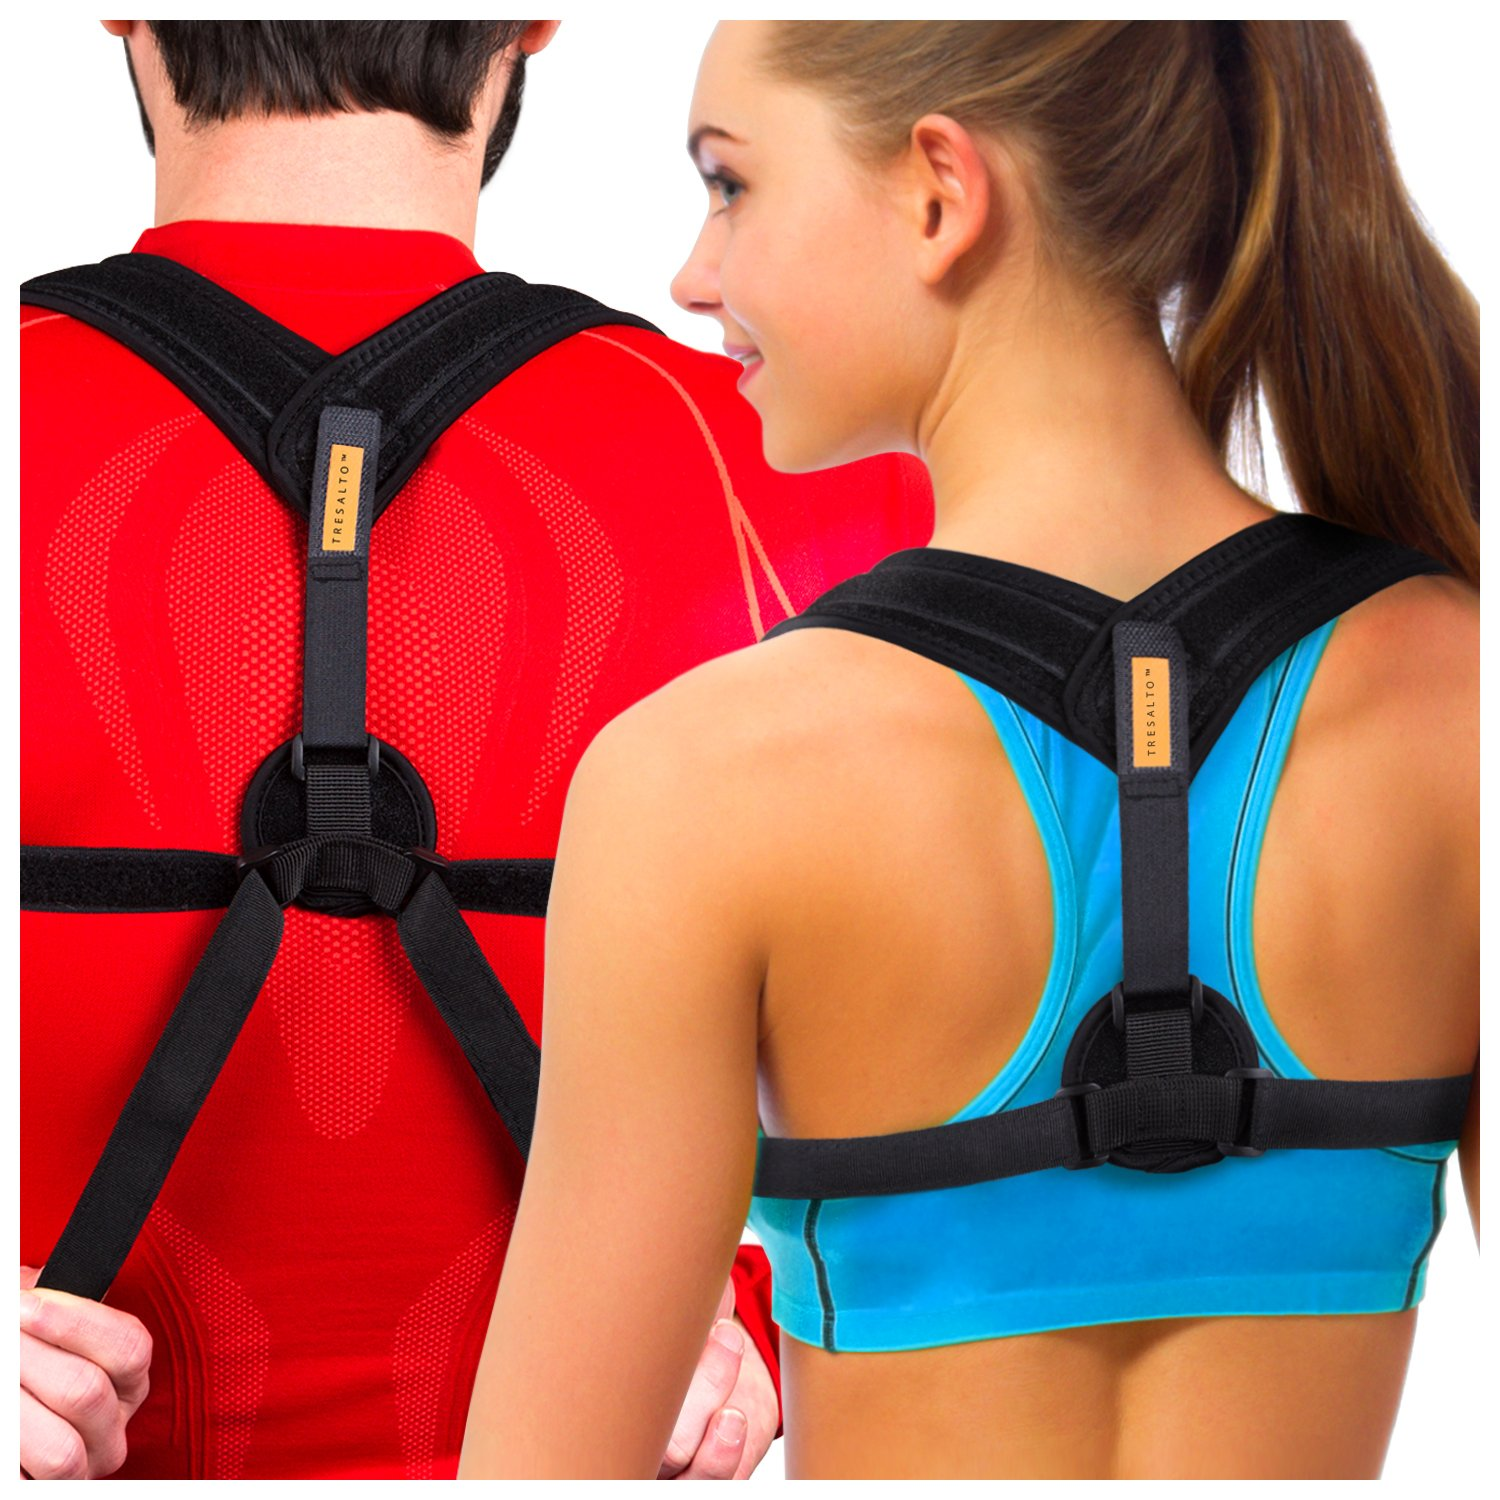 Tresalto Women Back Posture Corrector Brace with Effective, Orthopedic, Comfortable, Discreet Under Clothes Design